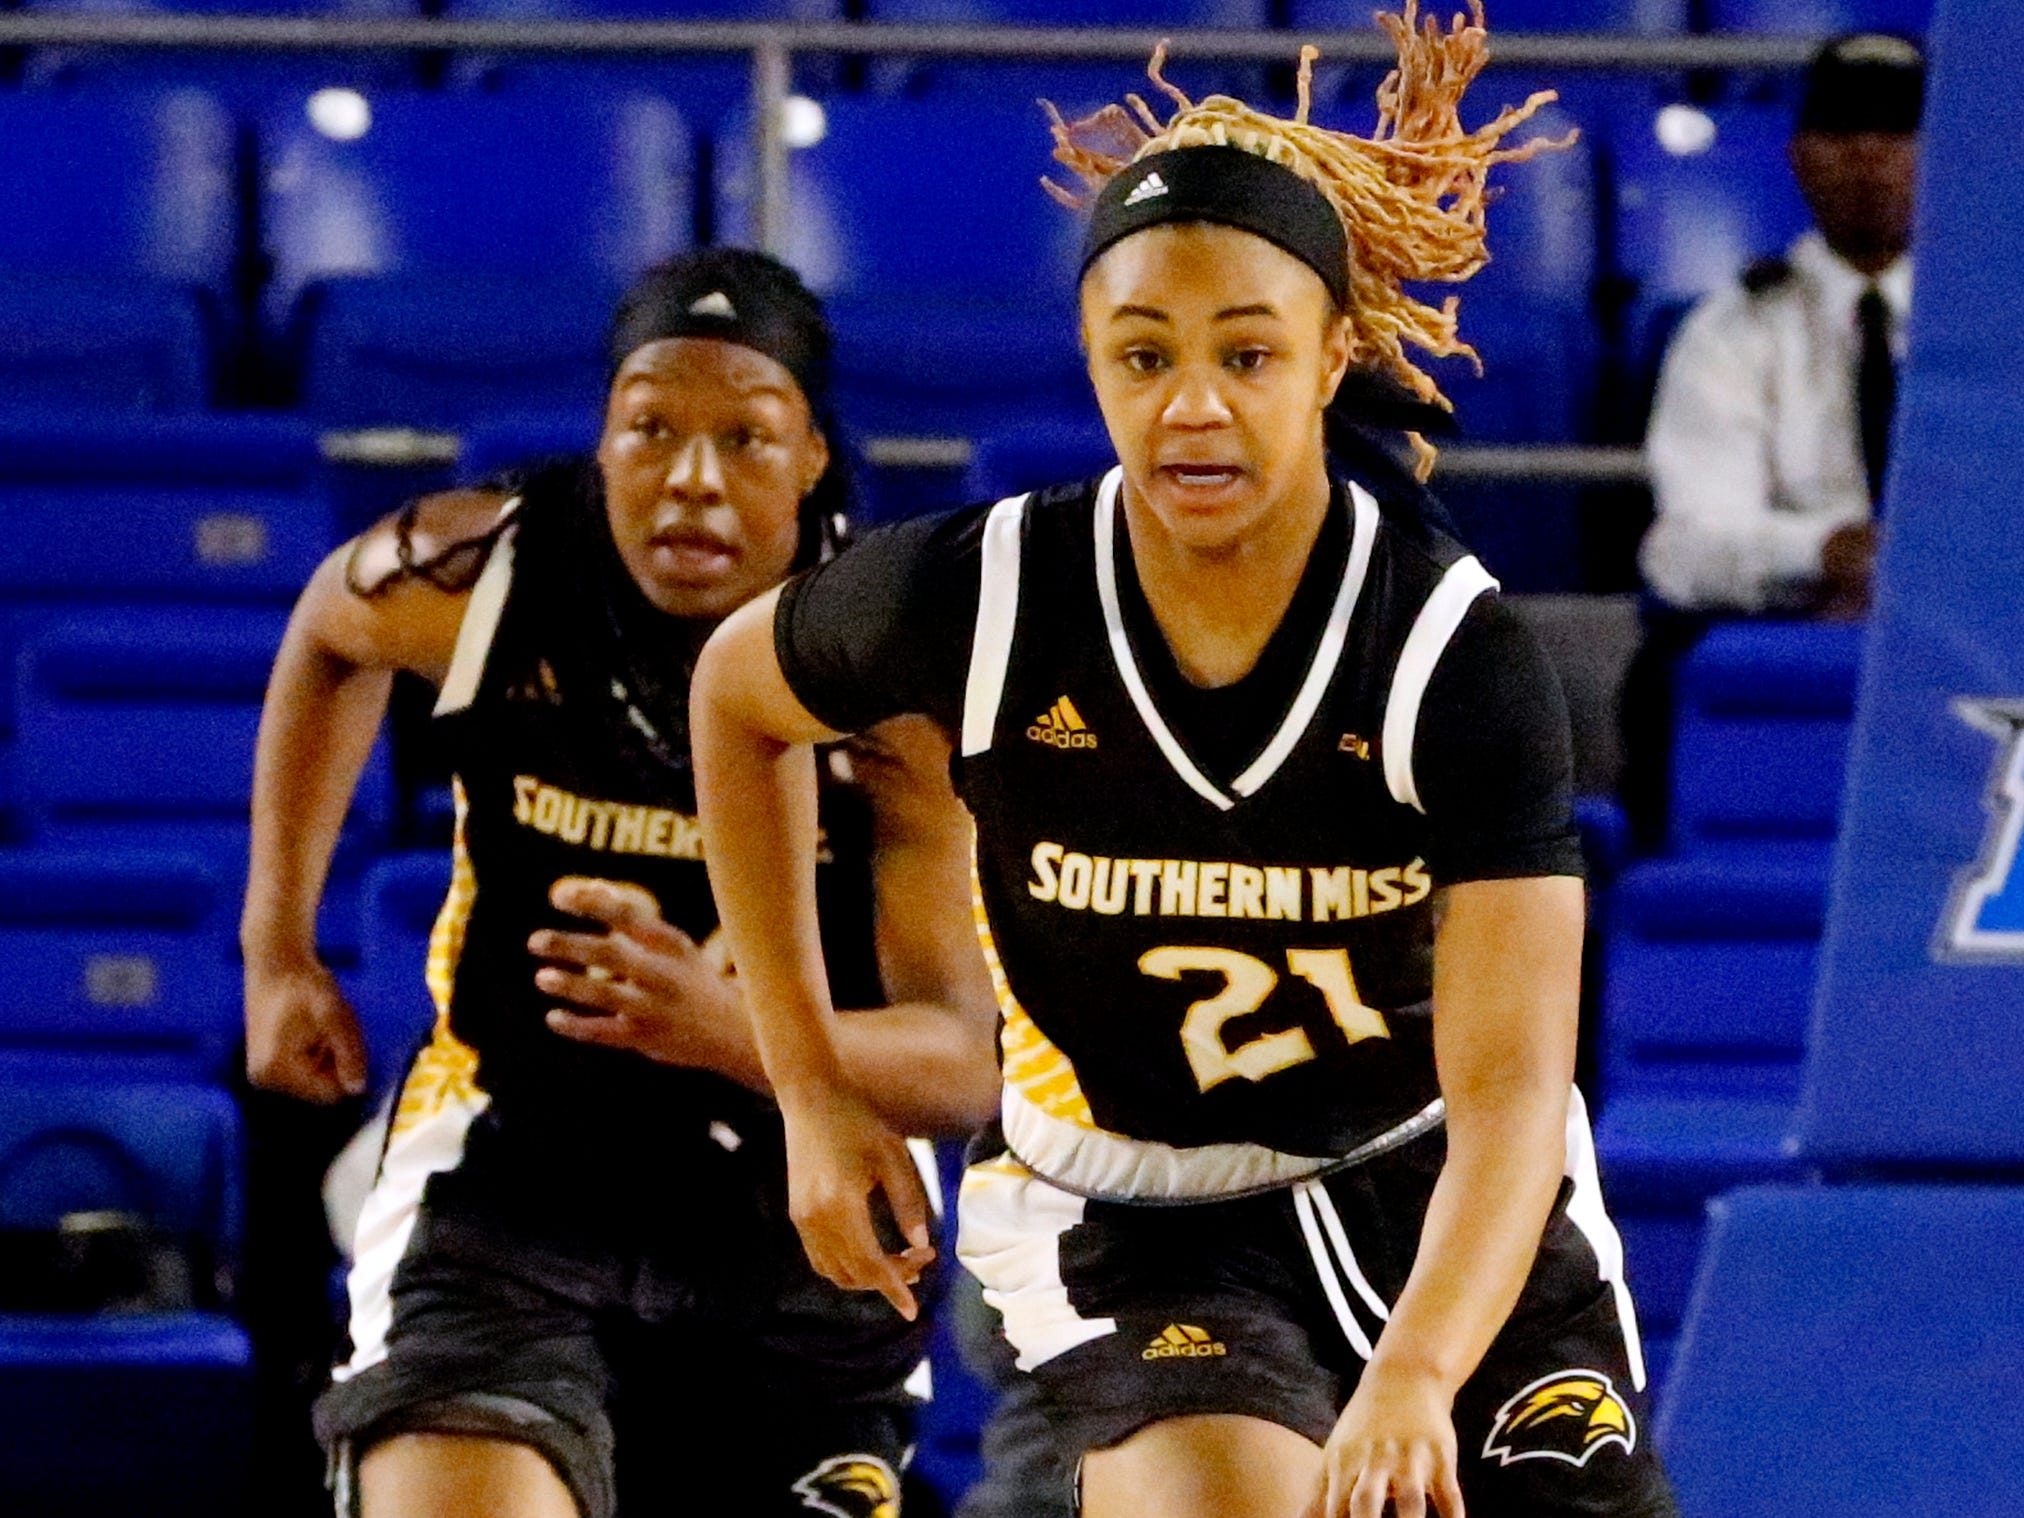 Southern Miss' Daishai Almond (21) brings the ball down the court during the game against MTSU on Thursday Jan. 10, 2019.